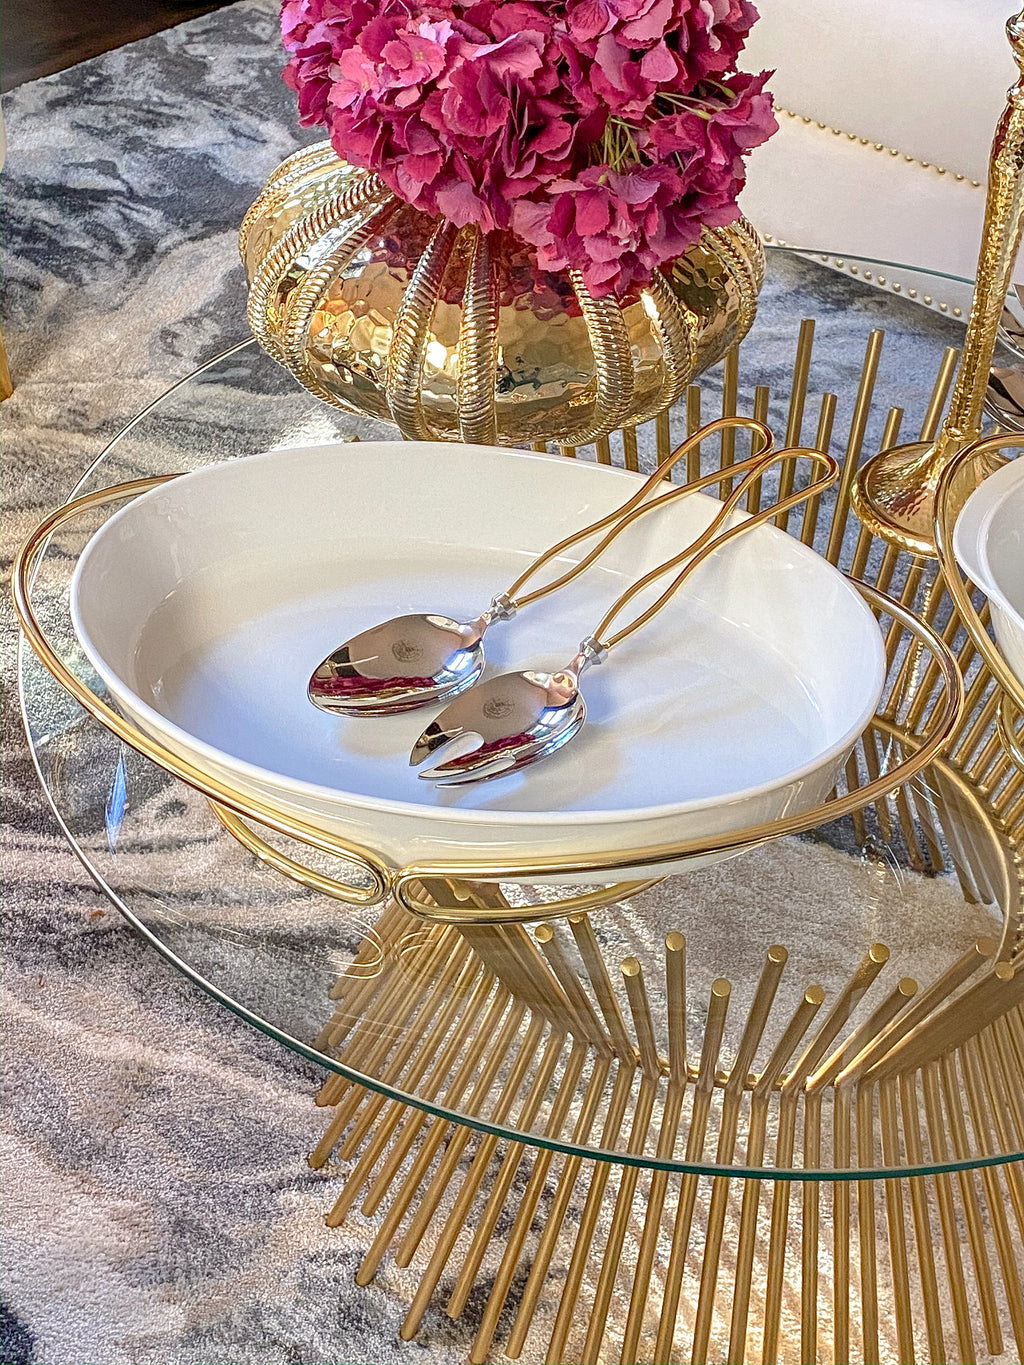 Oval Porcelain Serveware with Metal Base (2 Colors)-Inspire Me! Home Decor